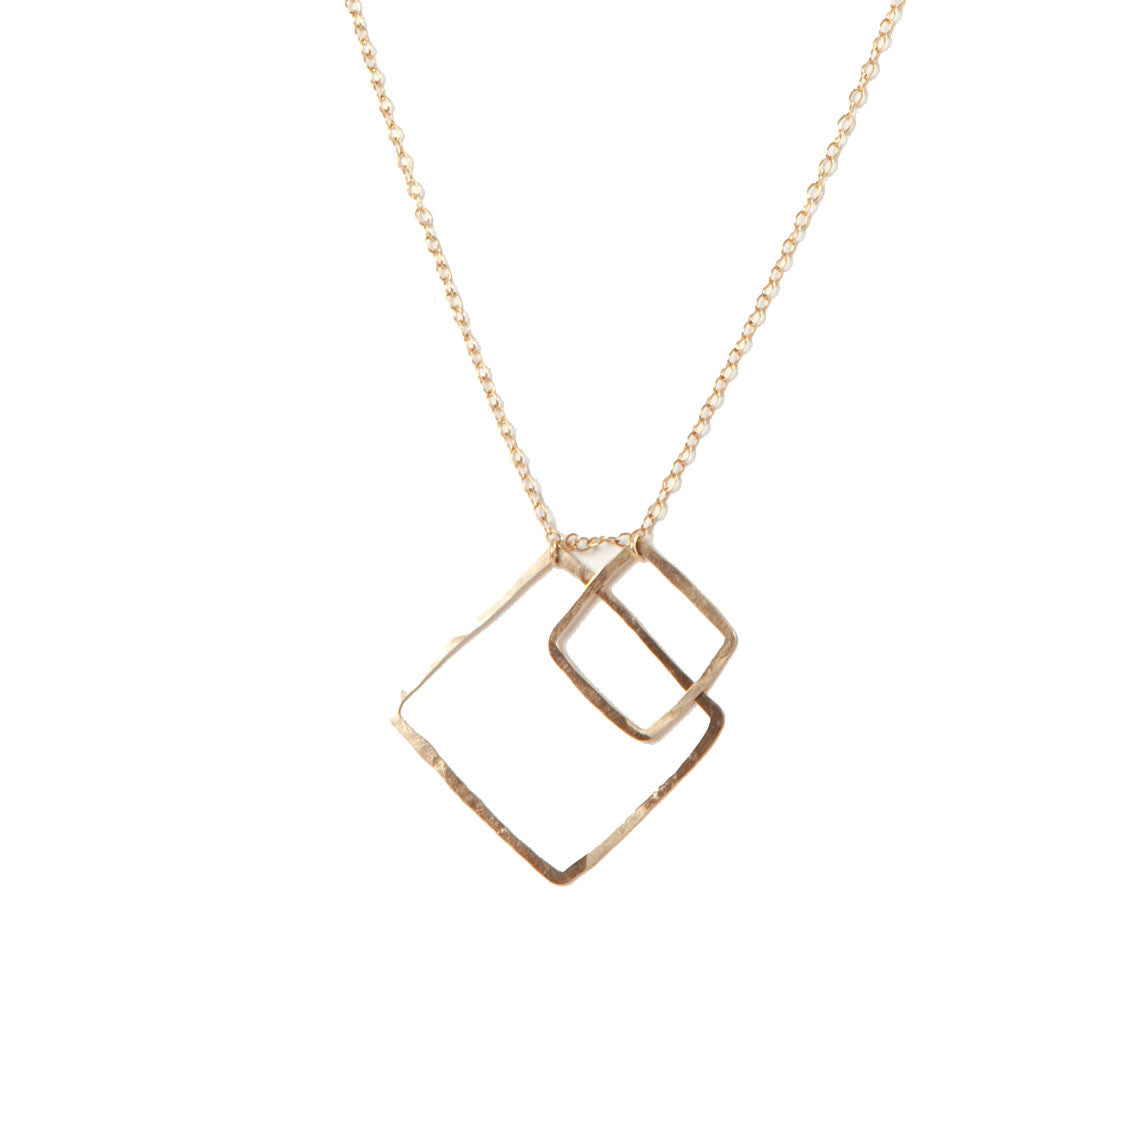 2 Squares Necklace